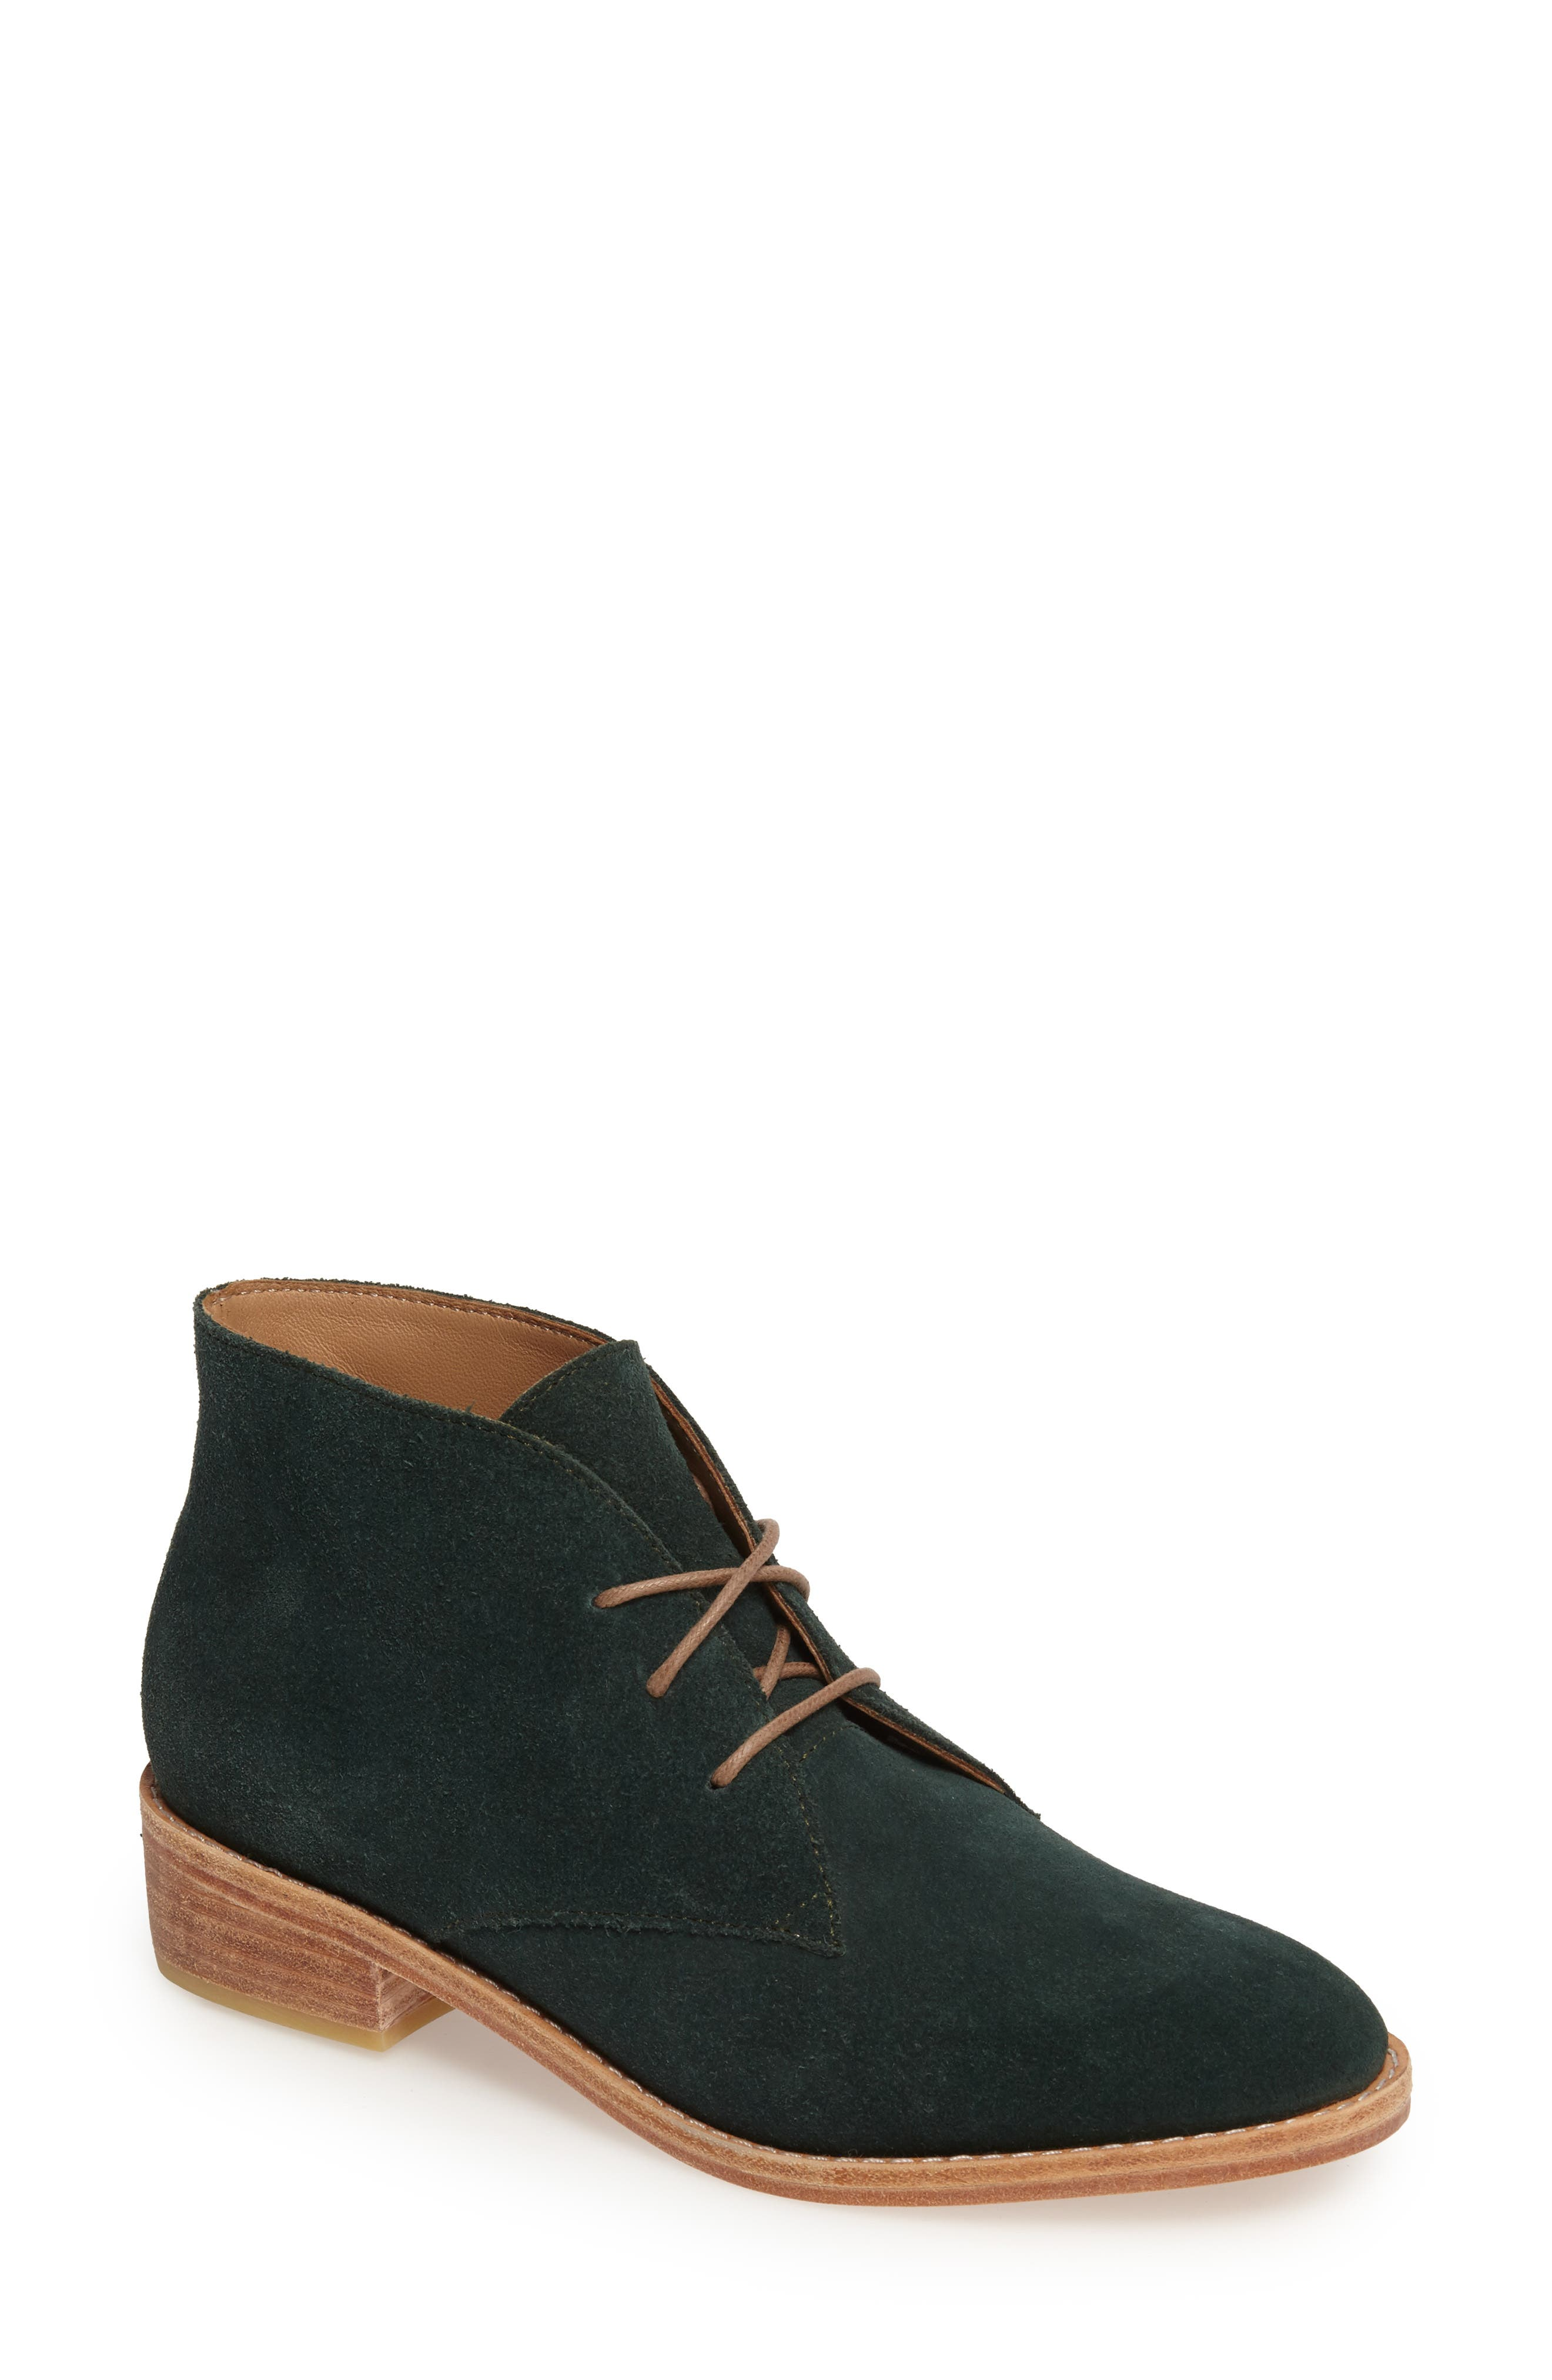 Manuela Chukka Boot,                         Main,                         color, Forest Green Suede